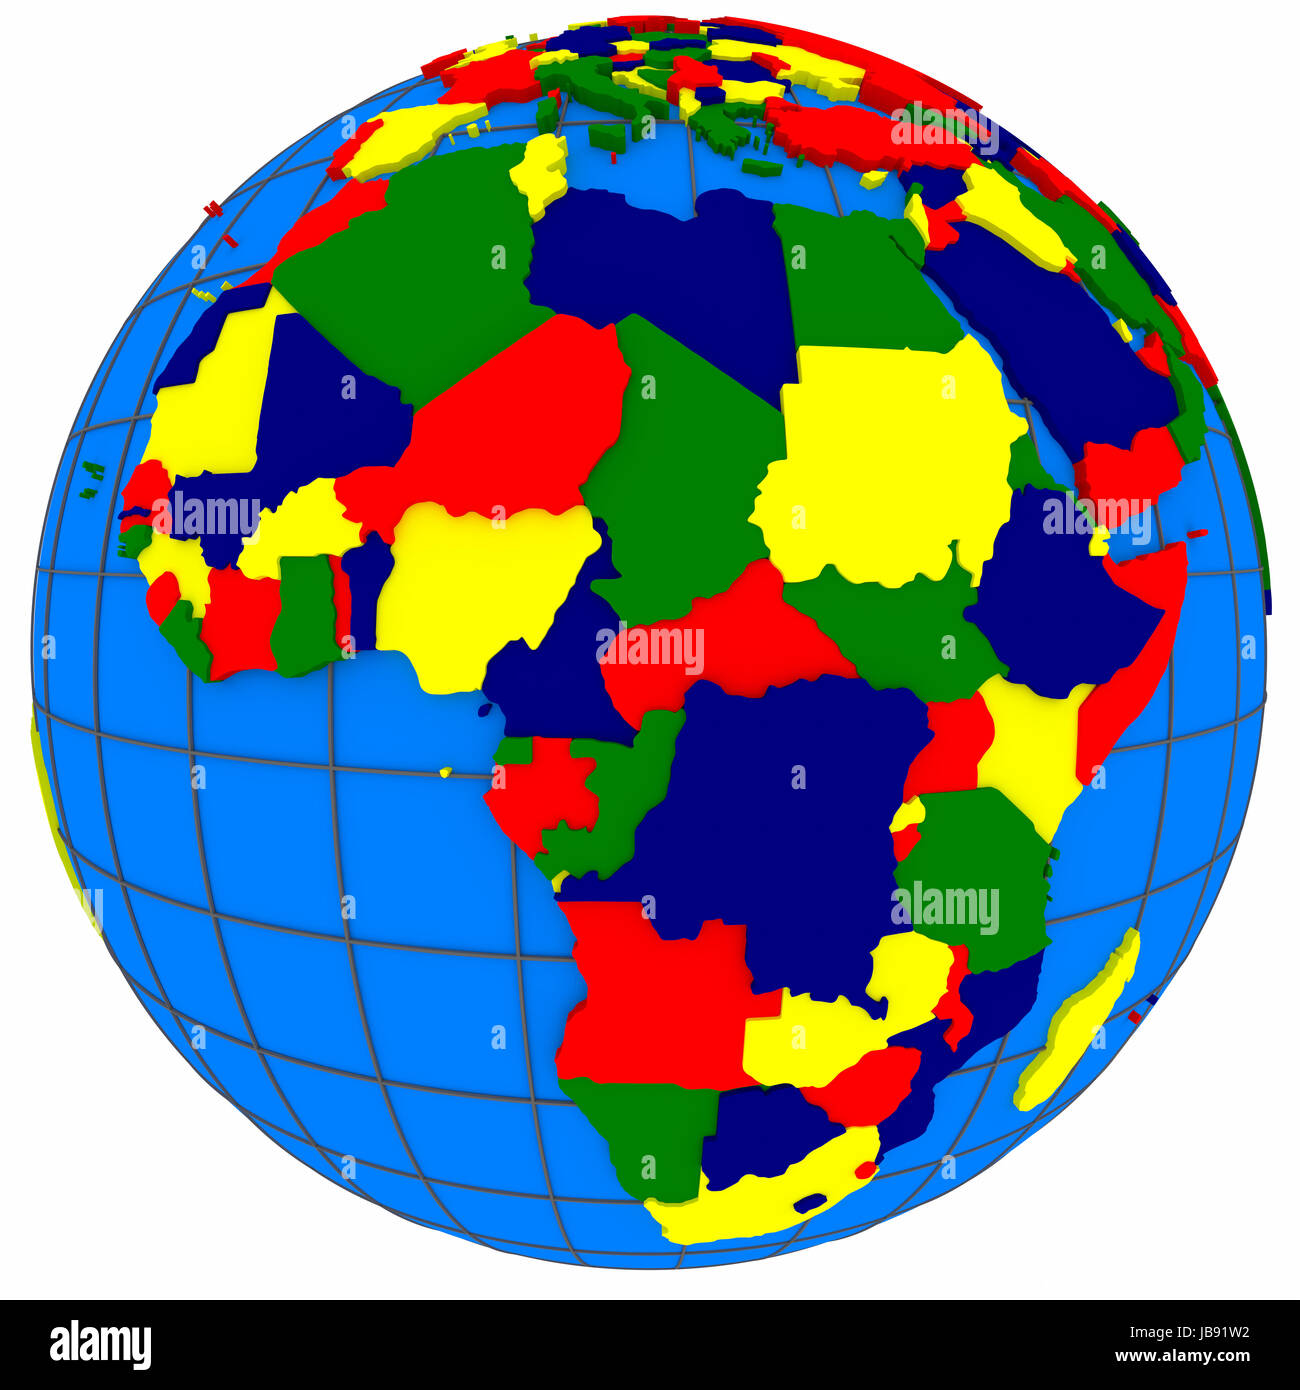 Map Of Africa 3d.Political Map Of Africa 3d Stock Photos Political Map Of Africa 3d